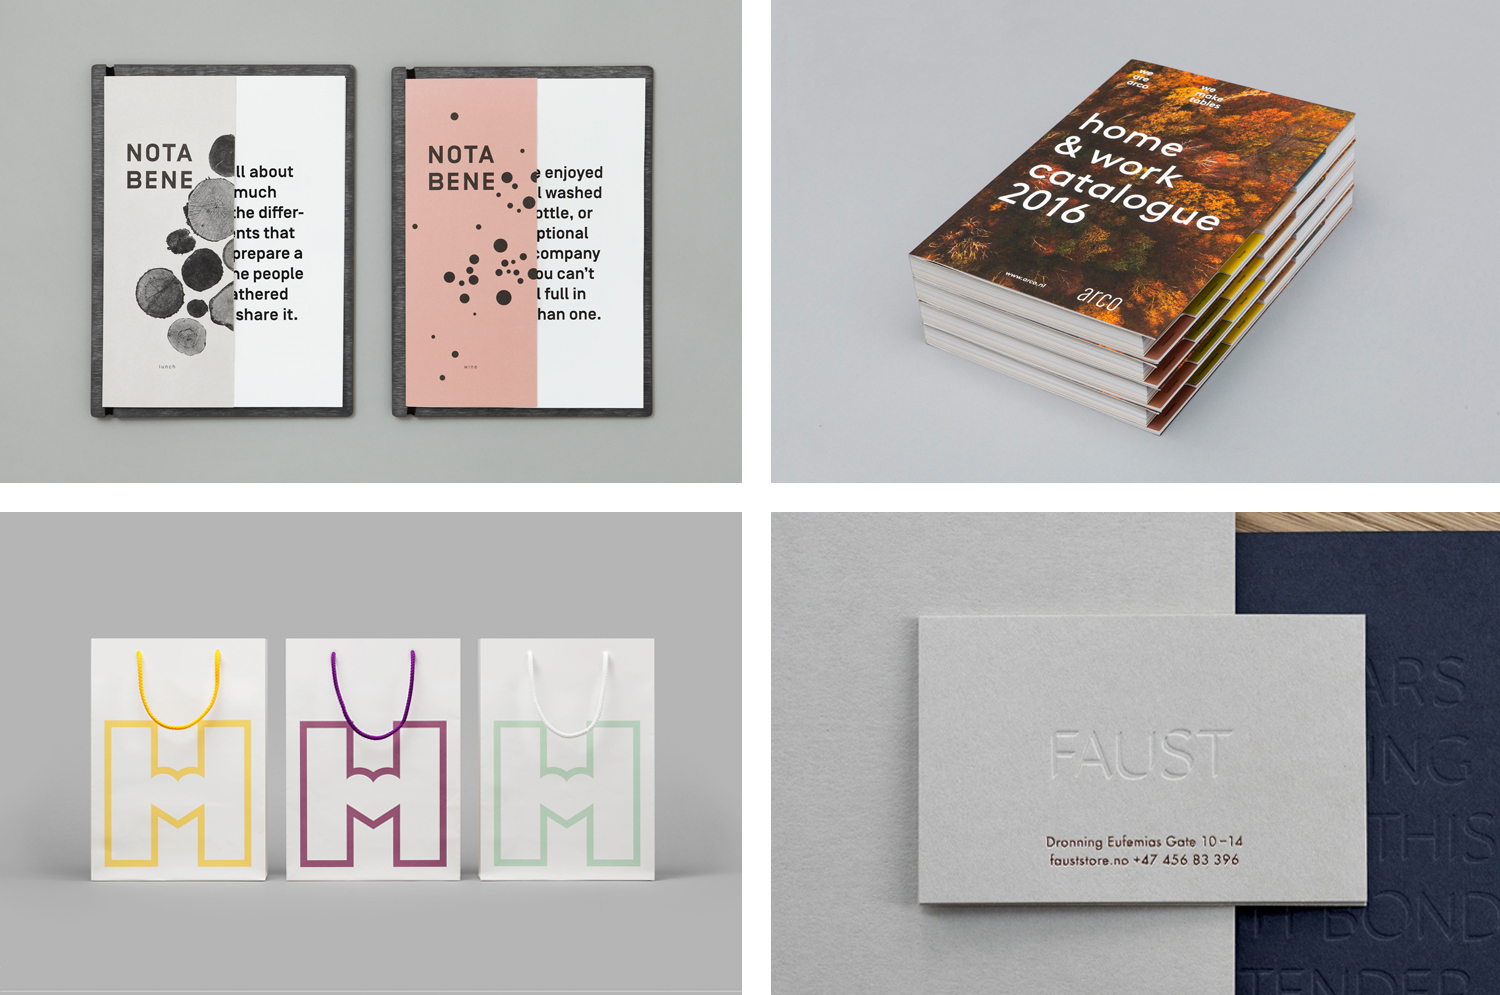 The Best Brand Identities of 2016